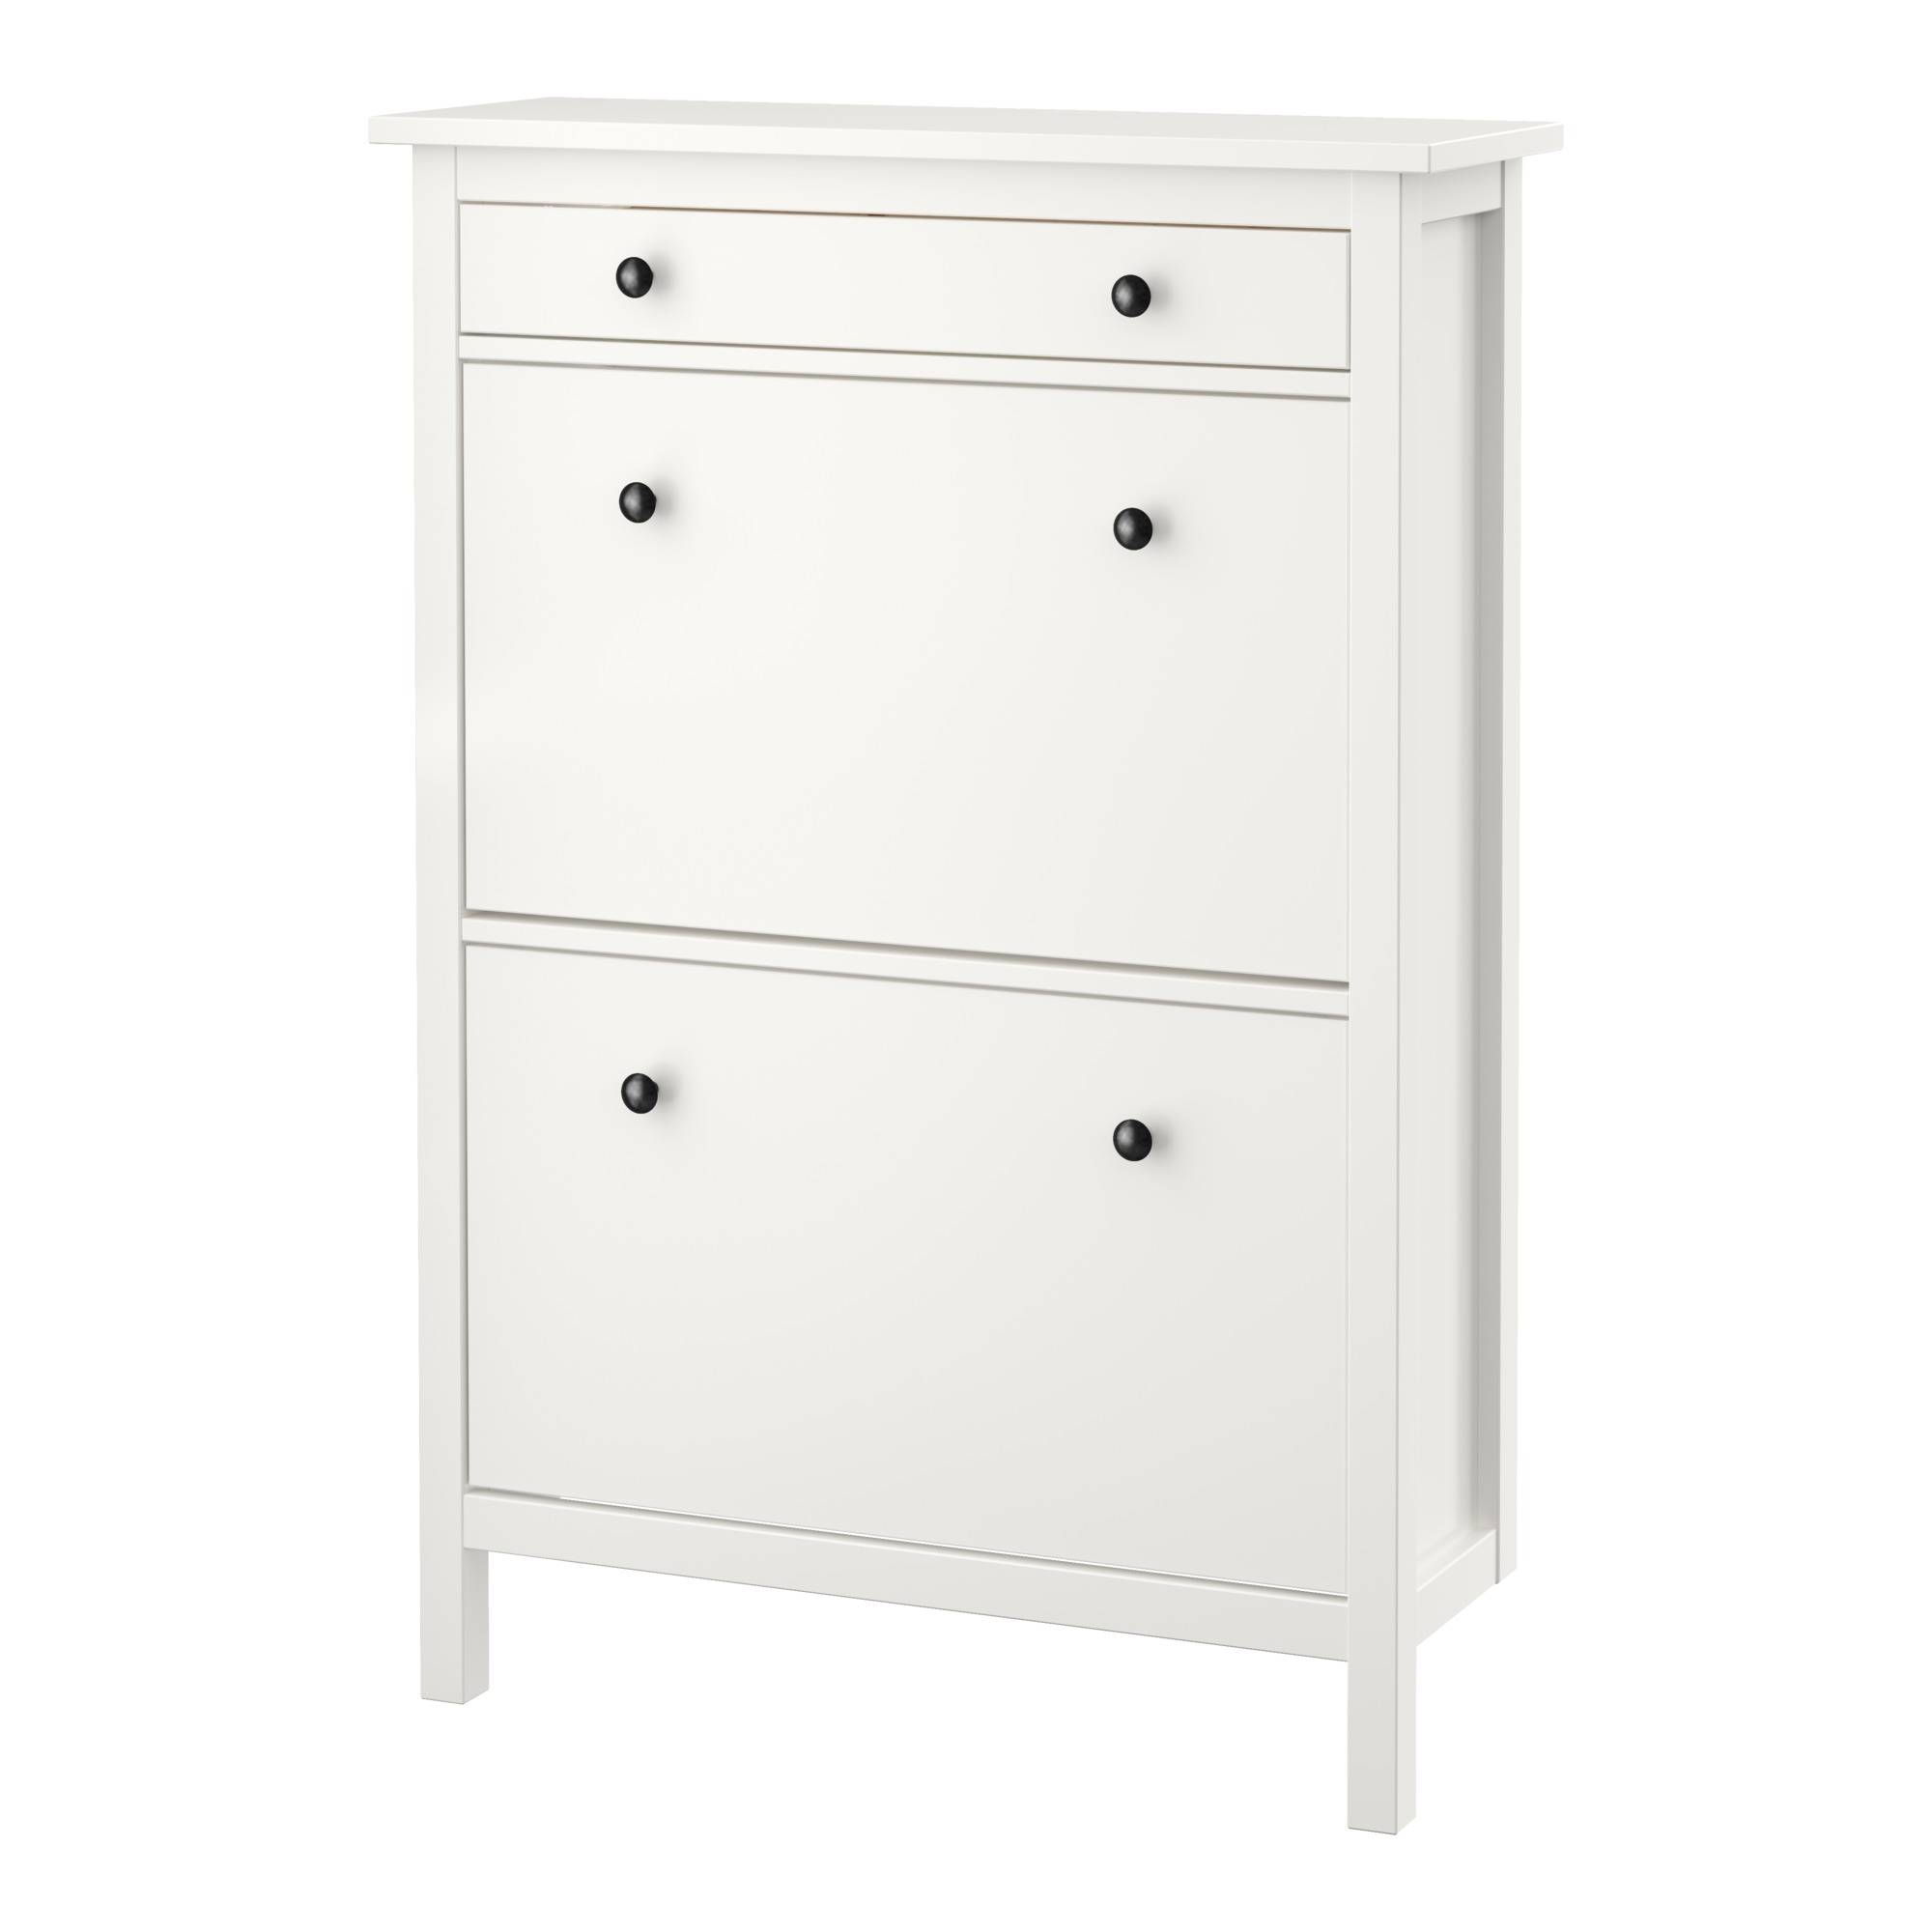 Shoe Cabinets & Storage - Ikea regarding Shallow Sideboard Cabinets (Image 20 of 30)